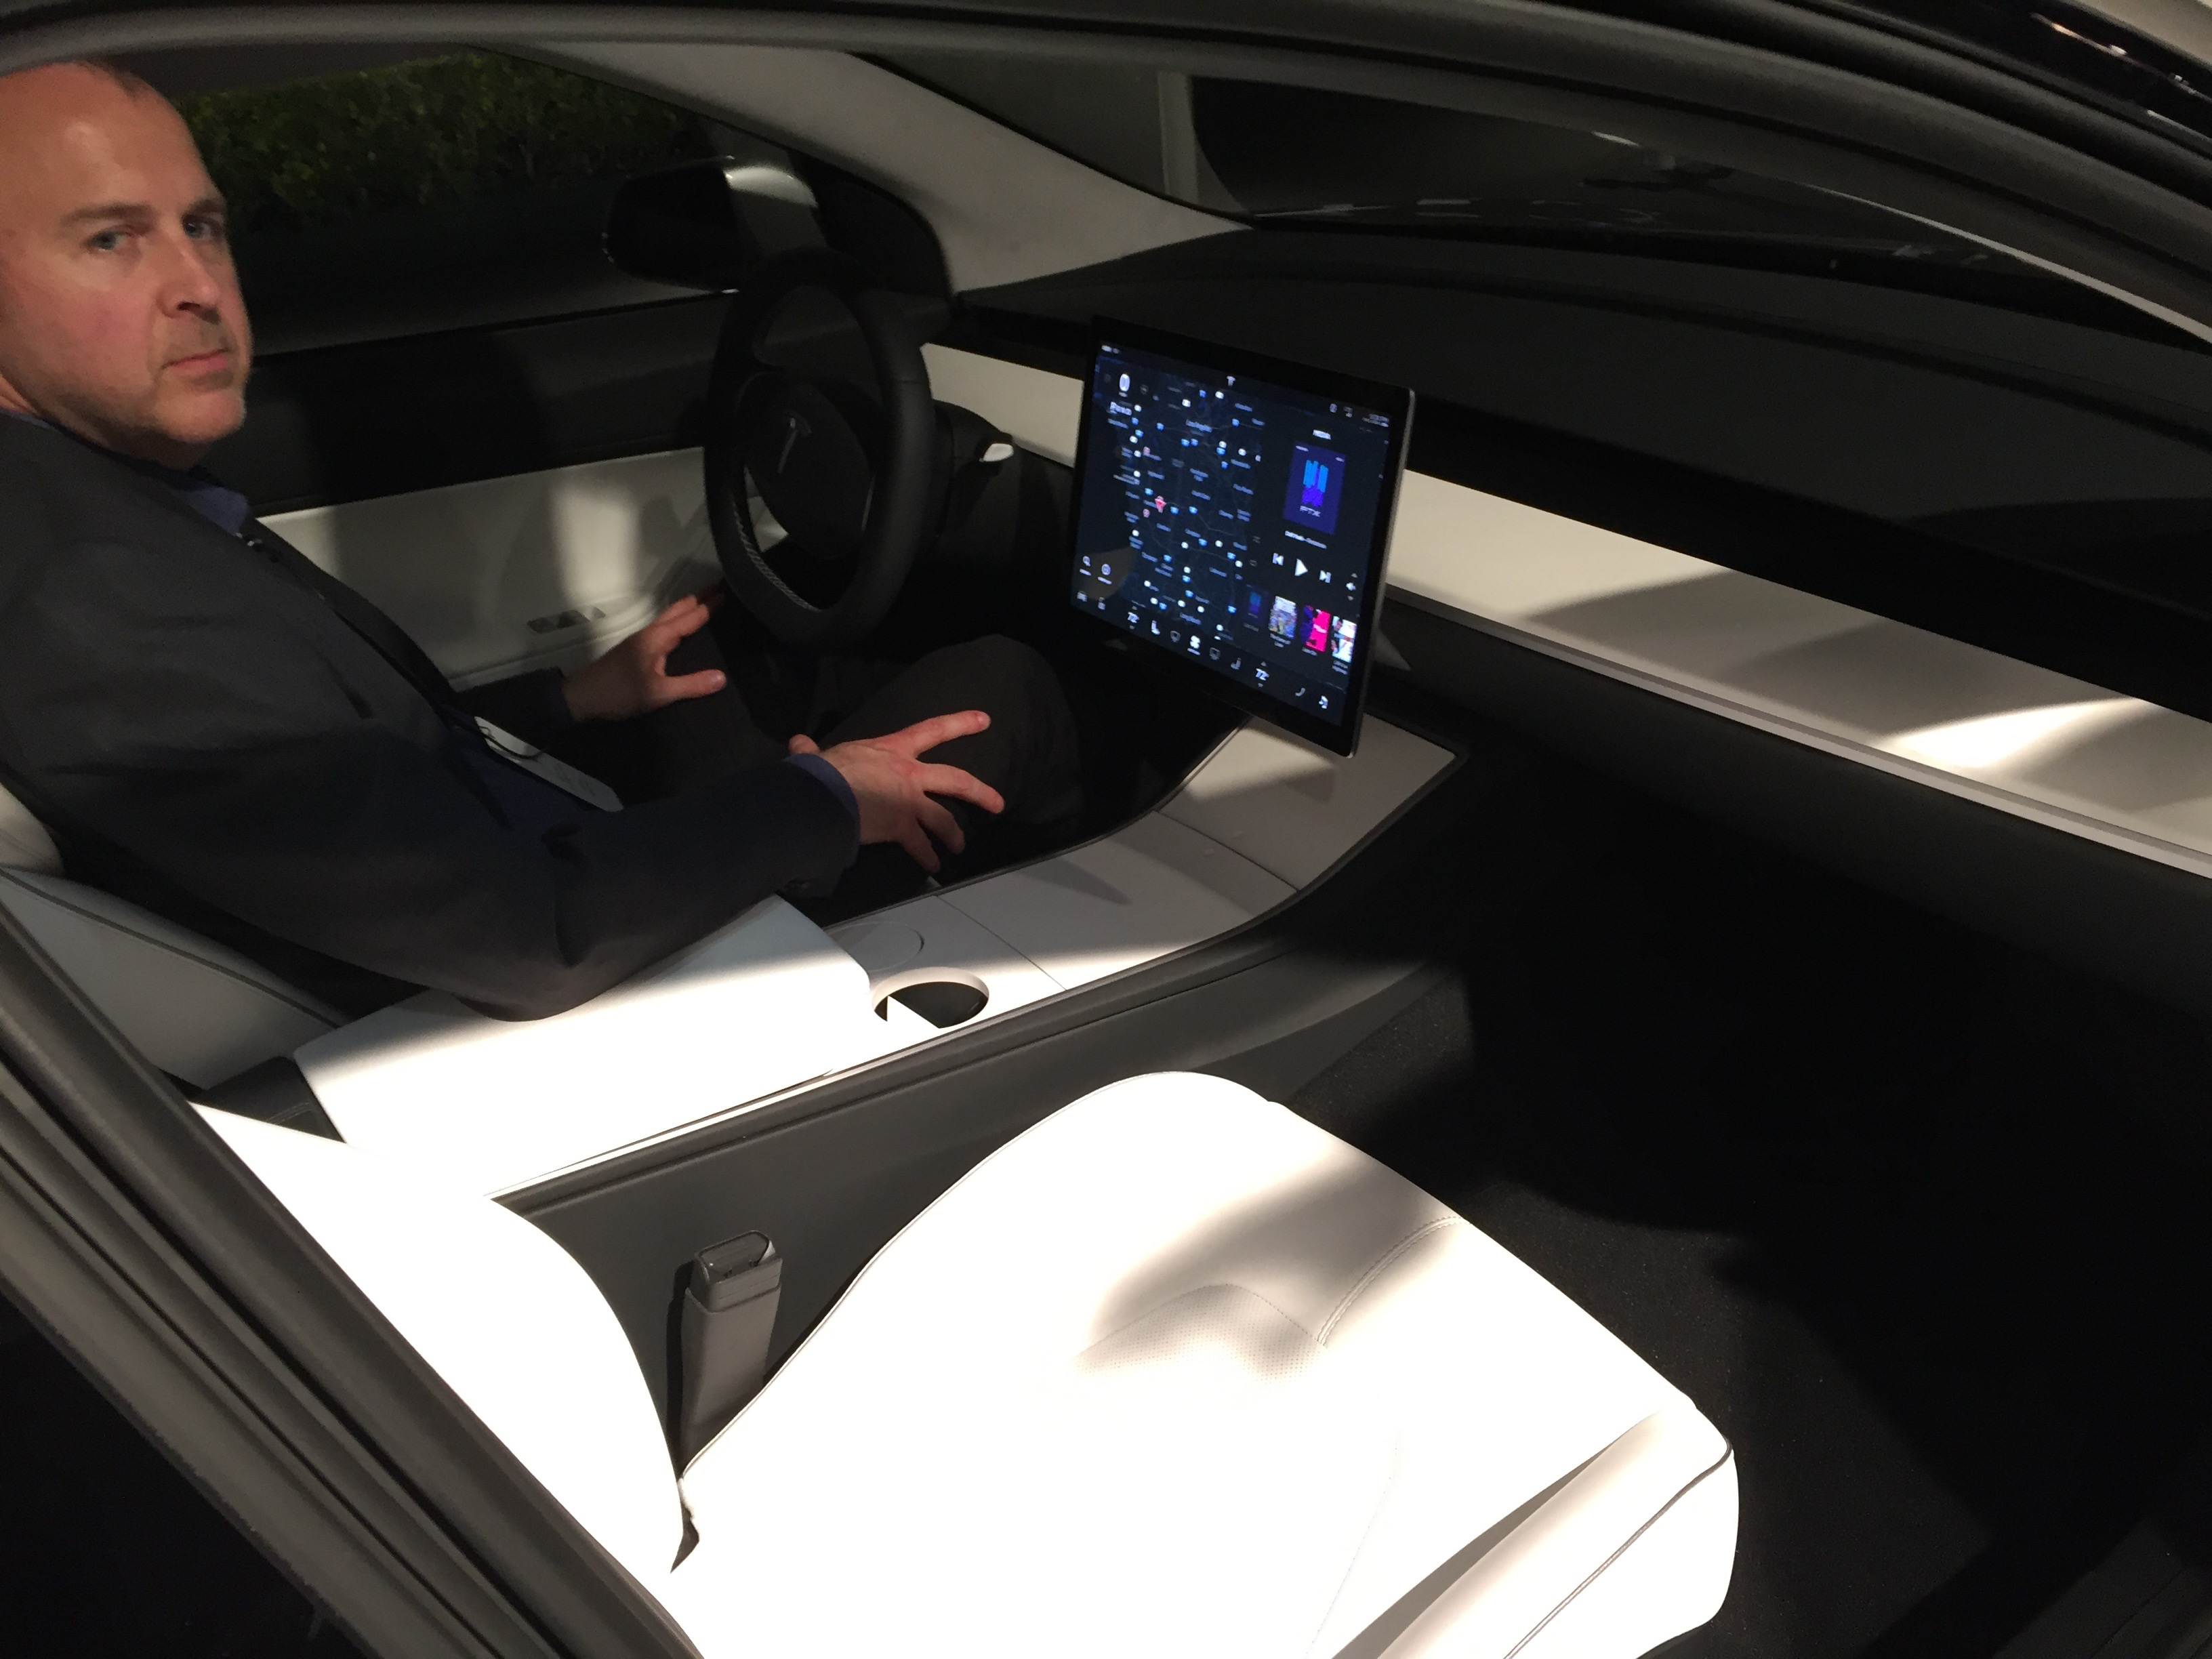 tesla model 3 interior what our video showed isn 39 t actually real. Black Bedroom Furniture Sets. Home Design Ideas